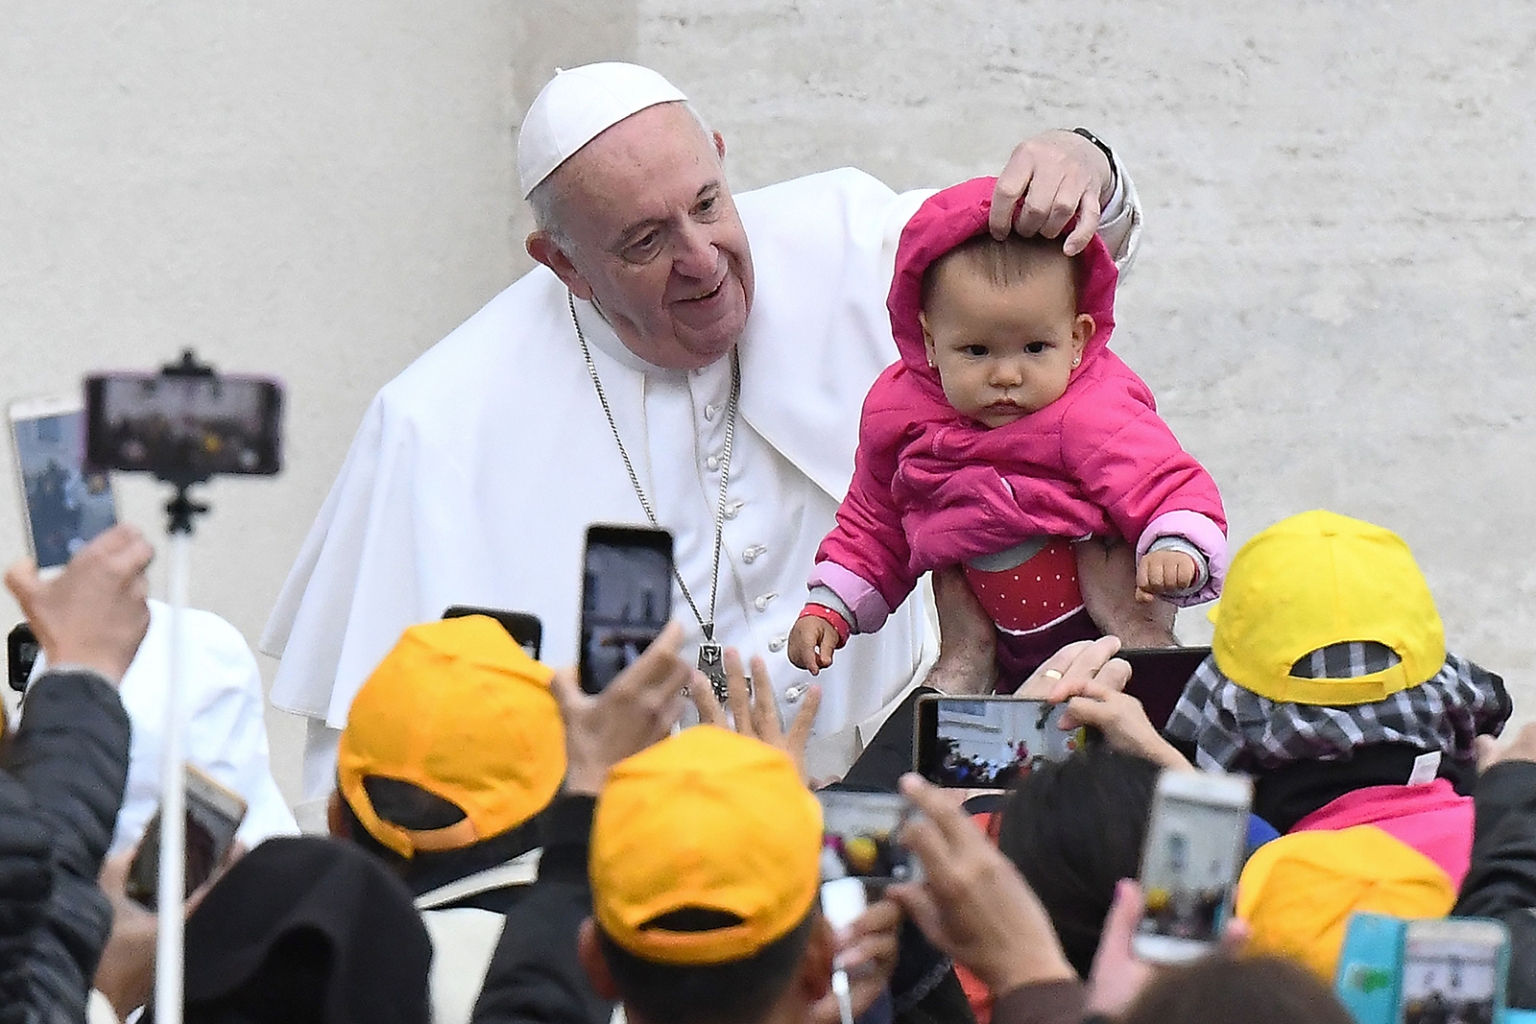 Pope Francis touches a baby as he arrives for his weekly general audience in St Peter's Square at the Vatican on May 15. VINCENZO PINTO/AFP/Getty Images